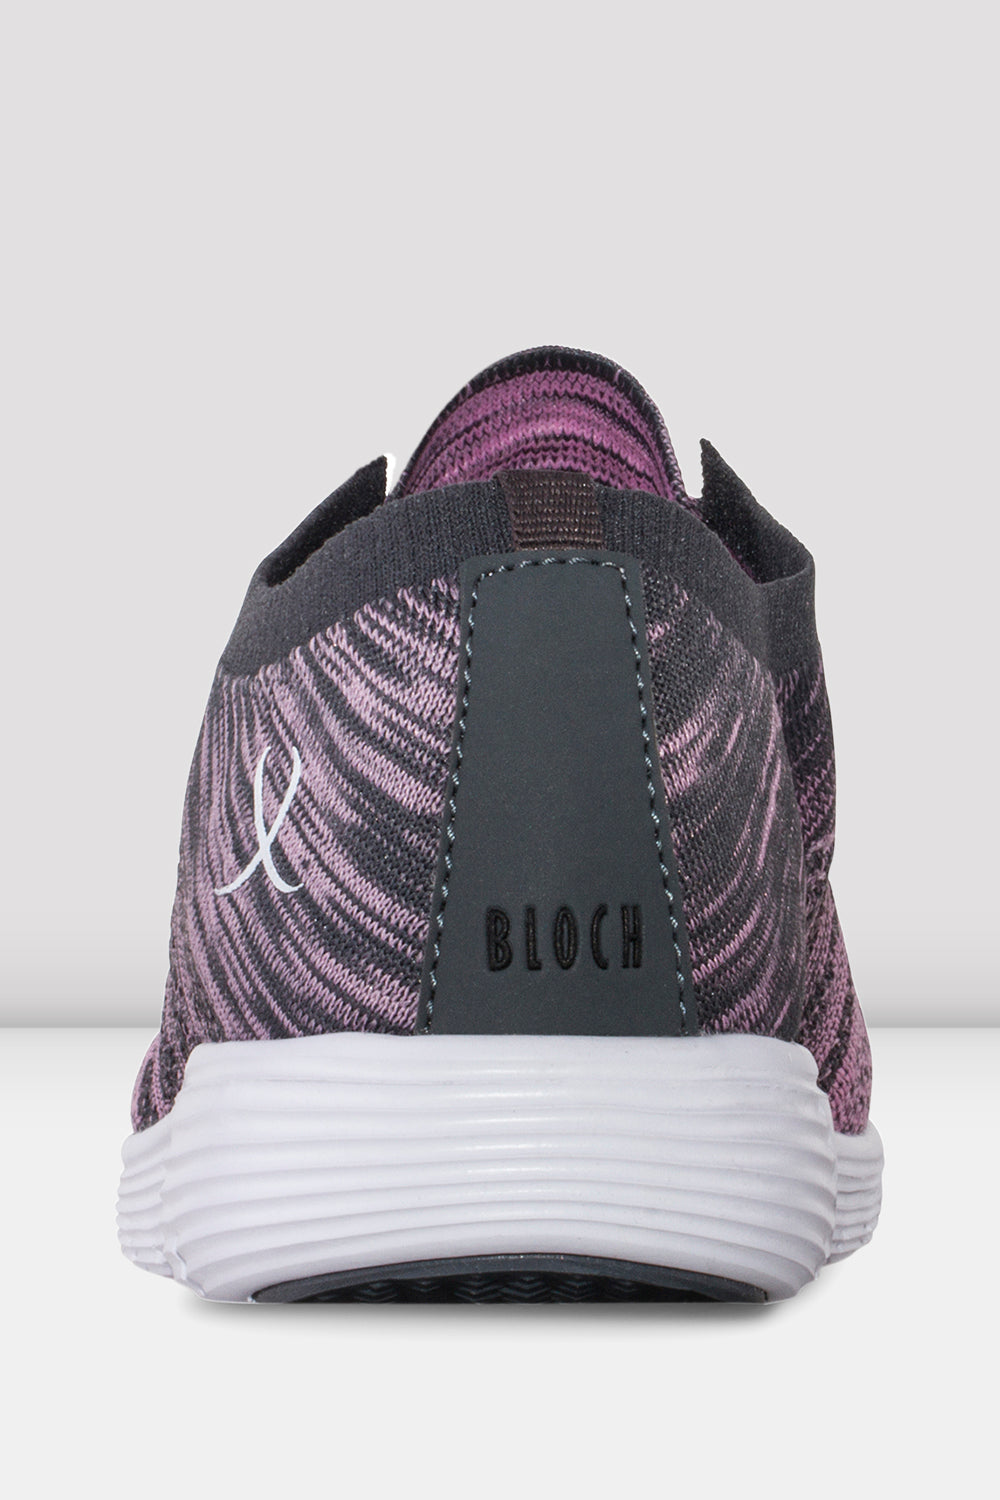 Girls Omnia Lightweight Knitted Sneakers - BLOCH US